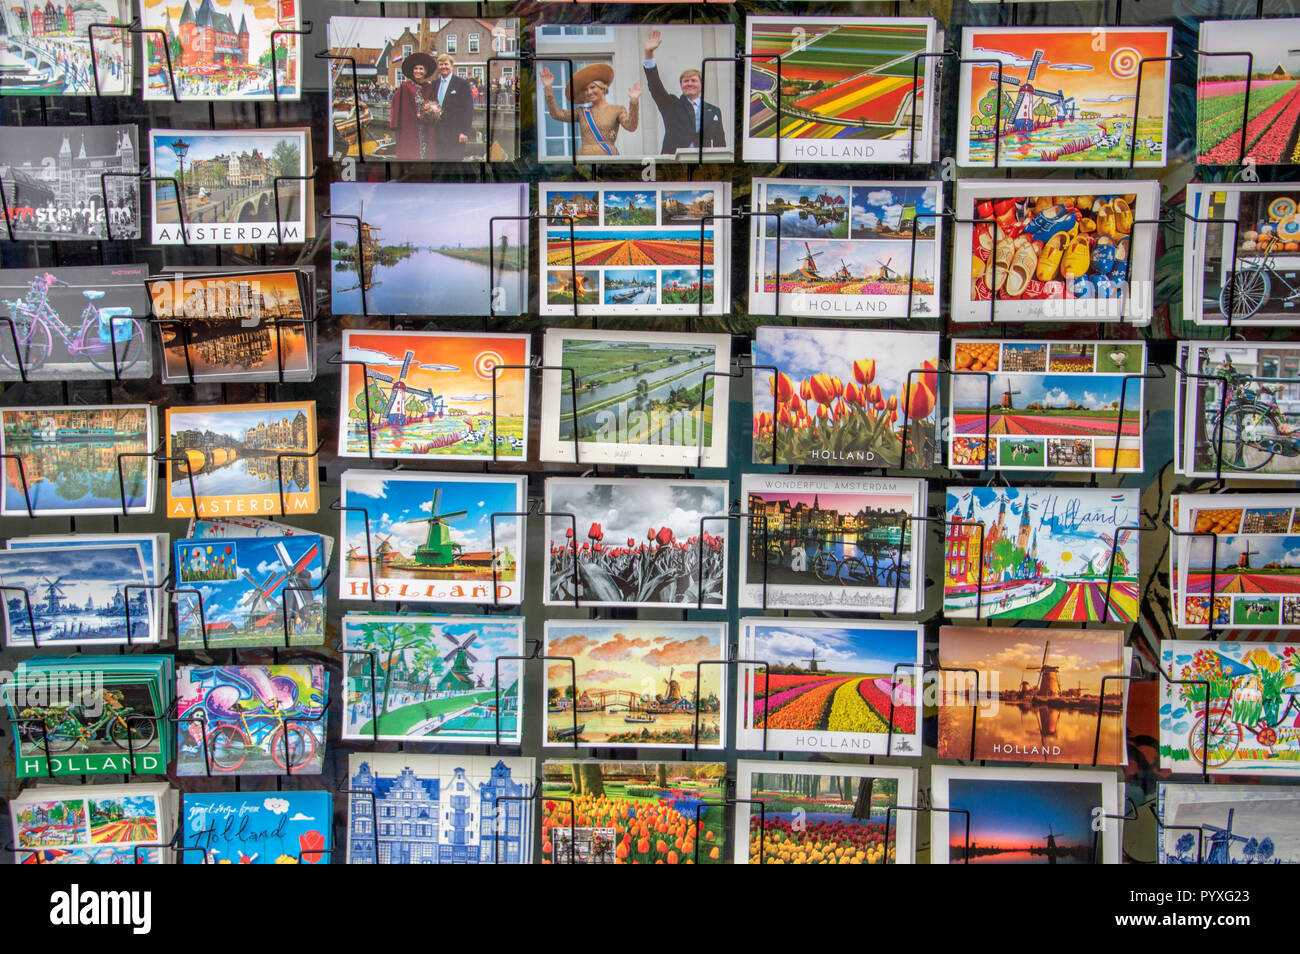 Selling Postcards At Amsterdam The Netherlands 2018 - Stock Image